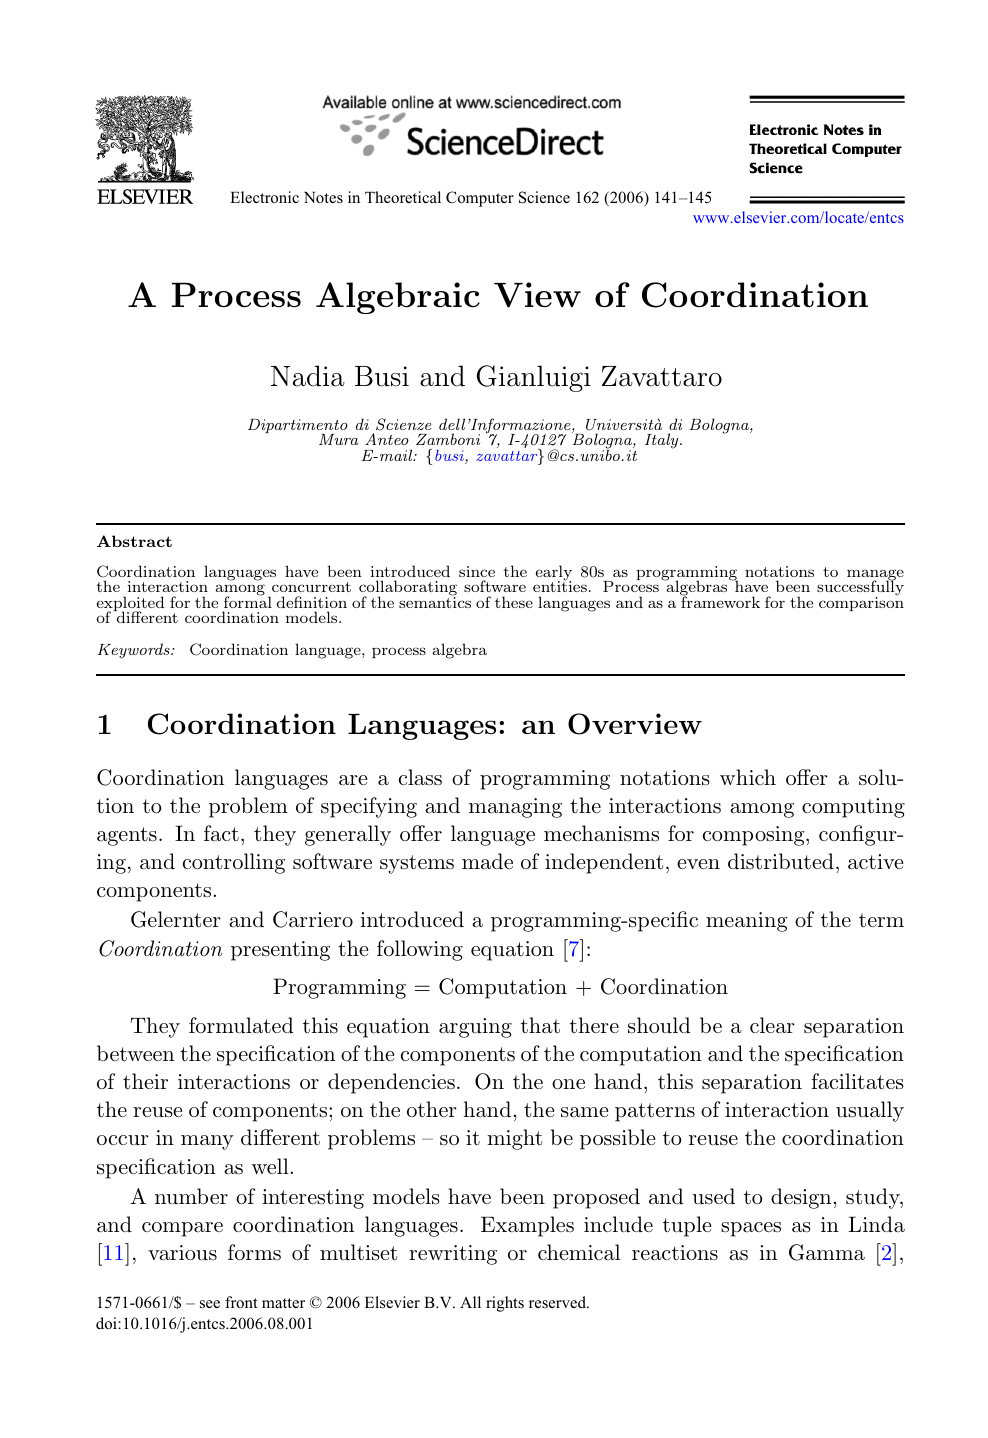 A Process Algebraic View Of Coordination Topic Of Research